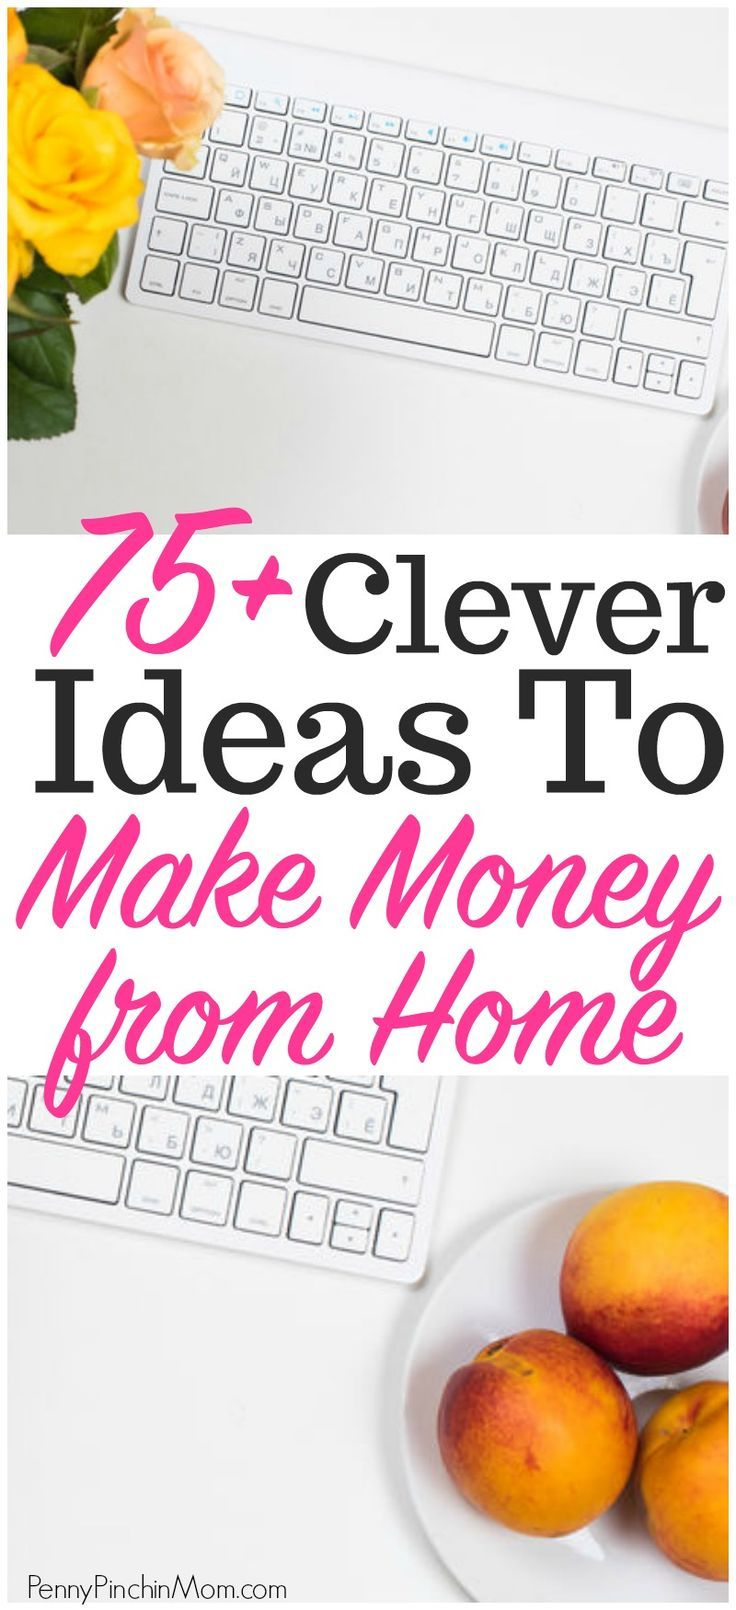 Unique Ideas for Your Work-at-Home Side-Hustle!! | Pinterest ...